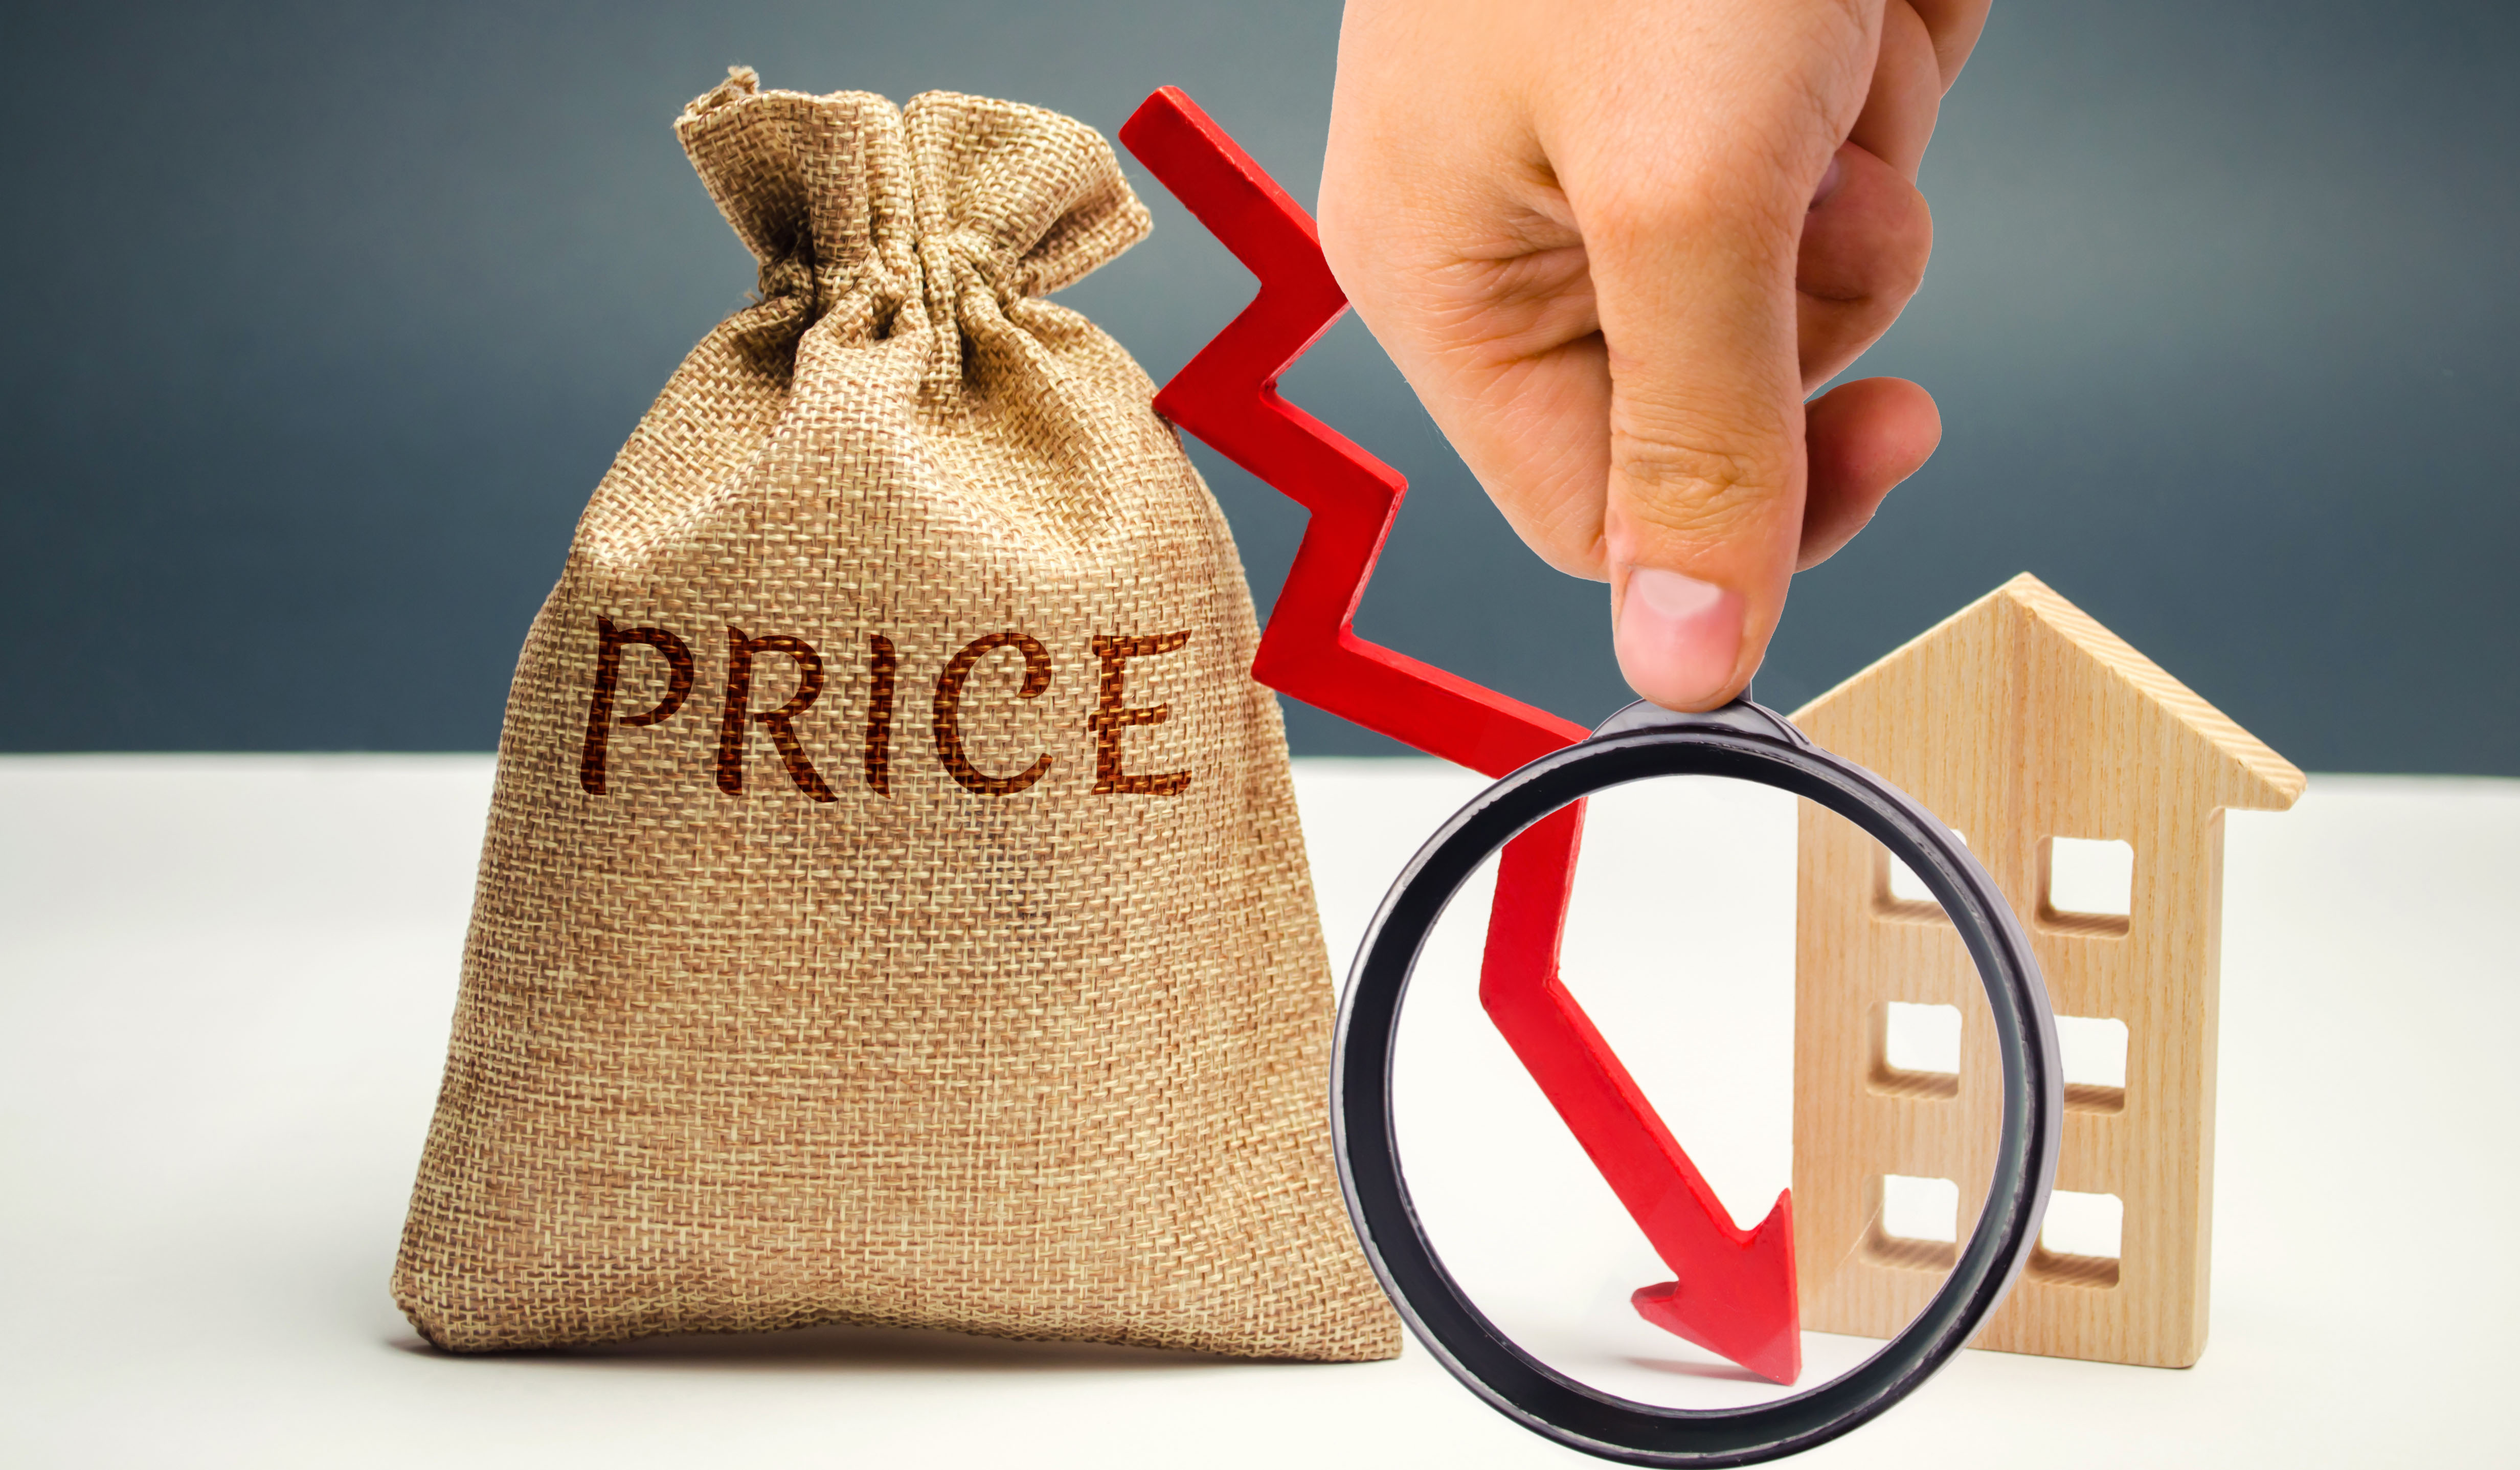 How To Ask For Price Reductions